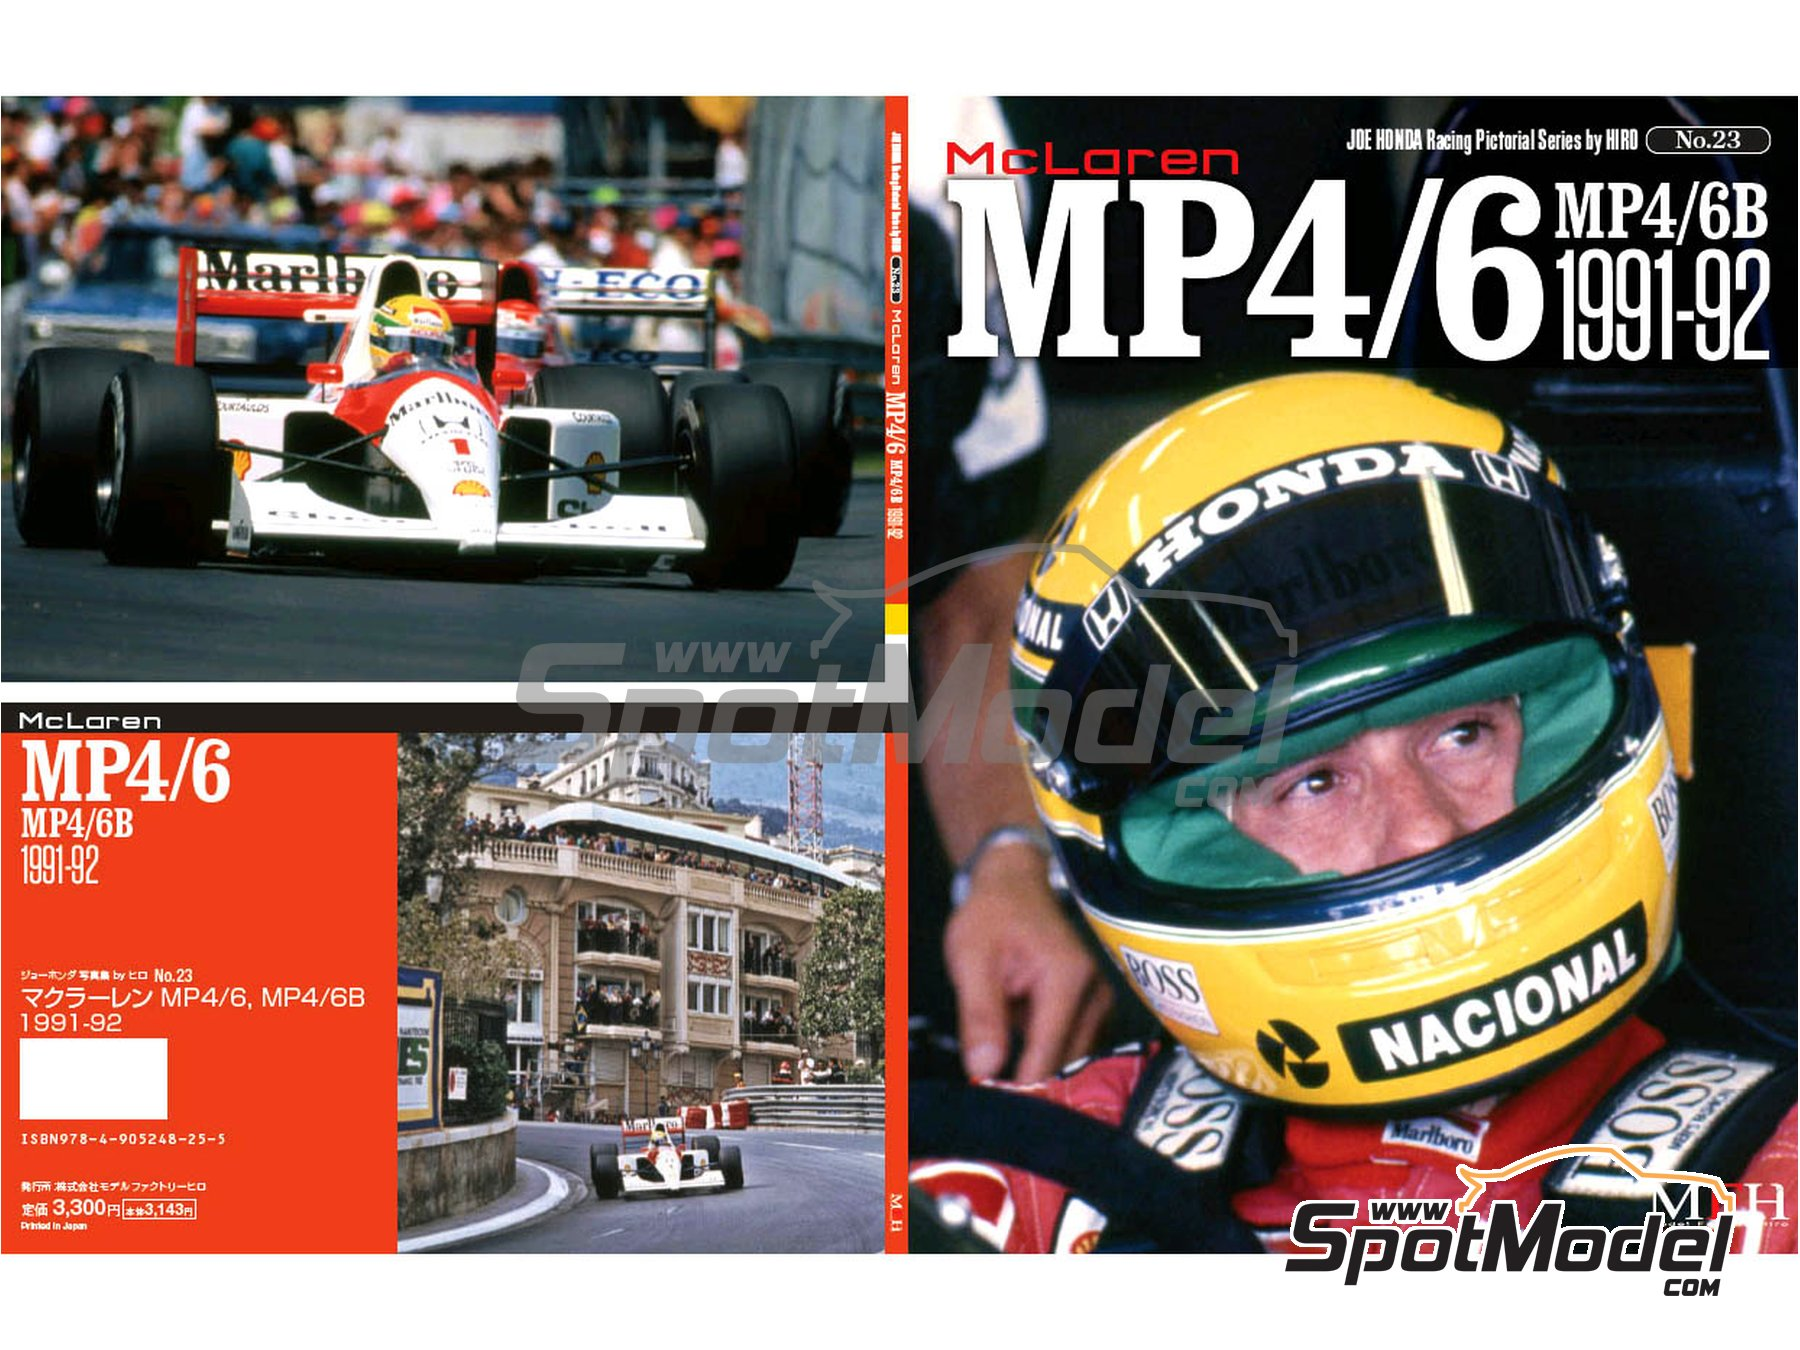 Image 1: JOE HONDA Racing Pictorial Series - Mc Laren MP4/6B - MP4/6 -  1991 y 1992 | Libro de referencia fabricado por Model Factory Hiro (ref. MFH-JH23)